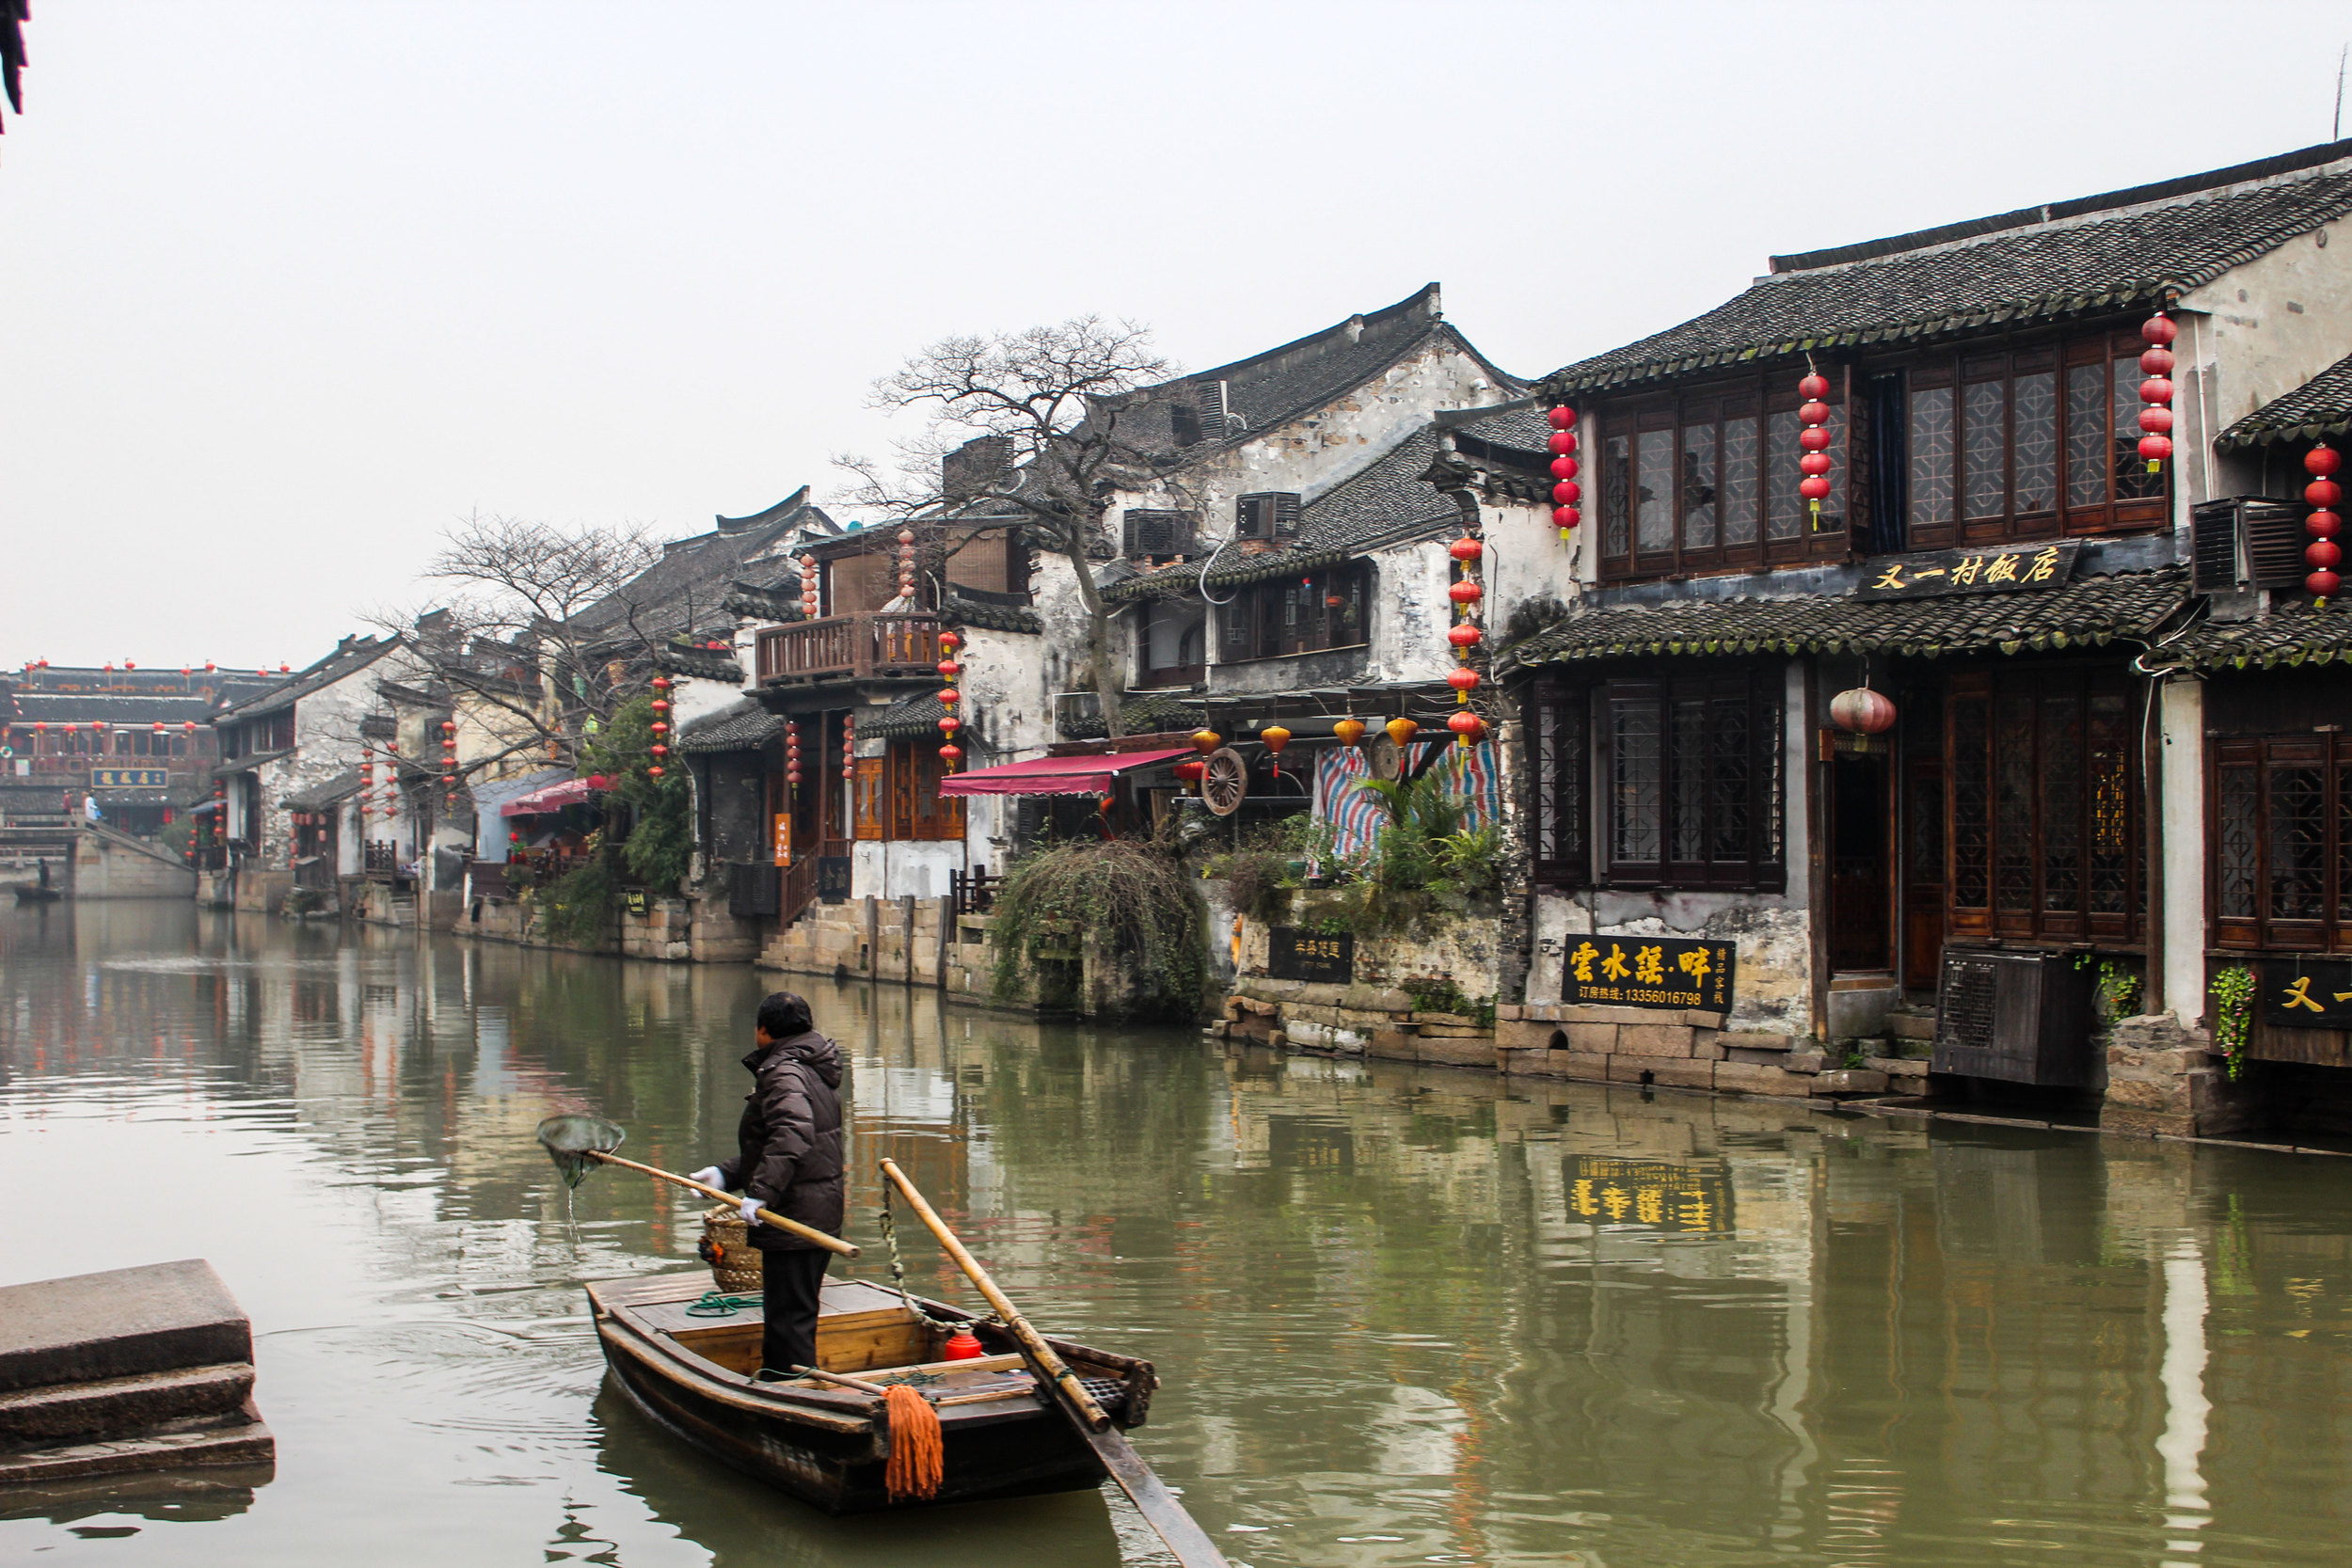 A water town outside of the city, accessible for day trips